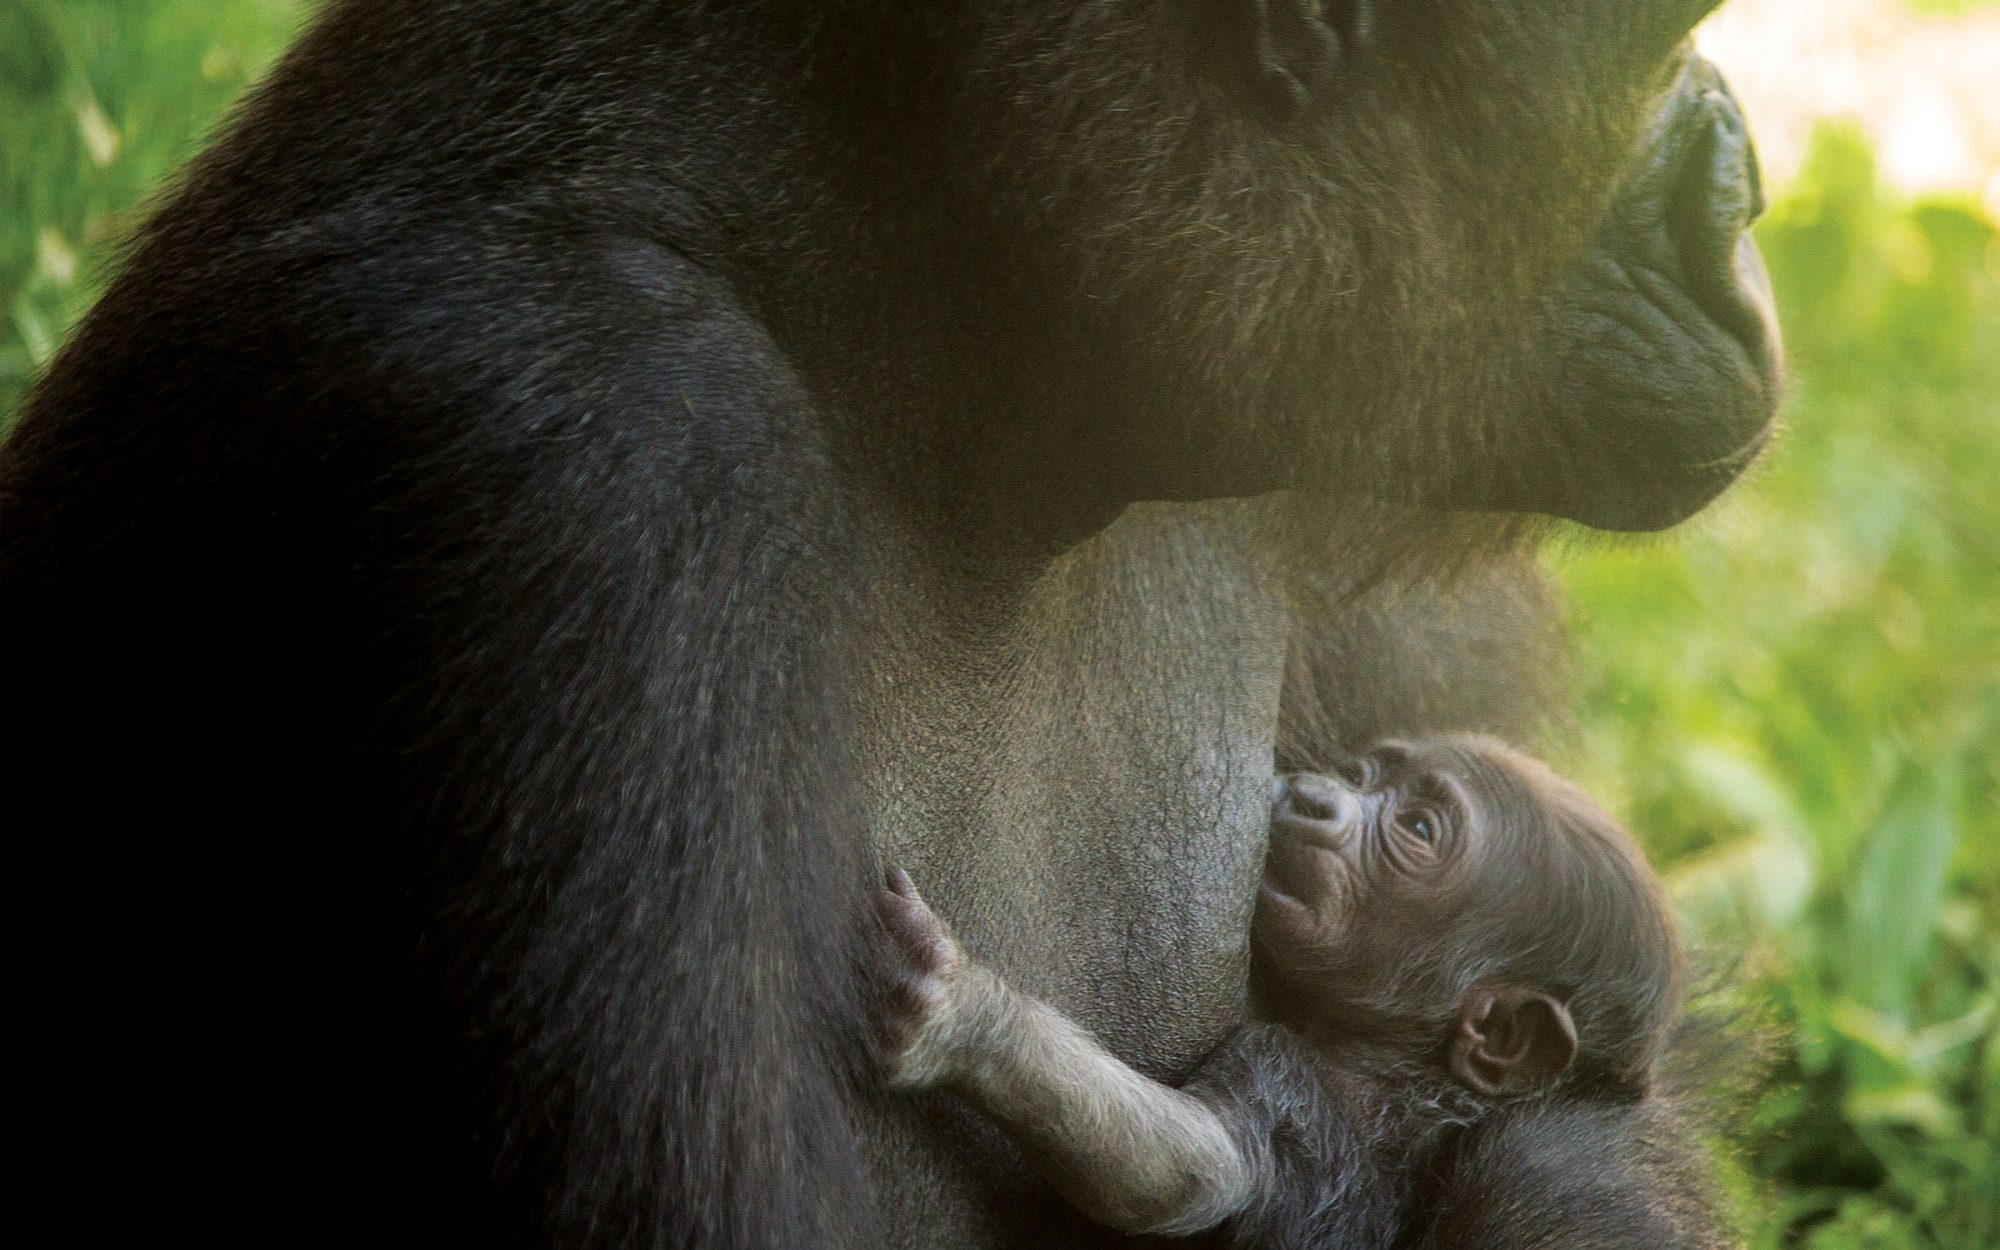 A Baby Gorilla Was Just Born at the Philadelphia Zoo